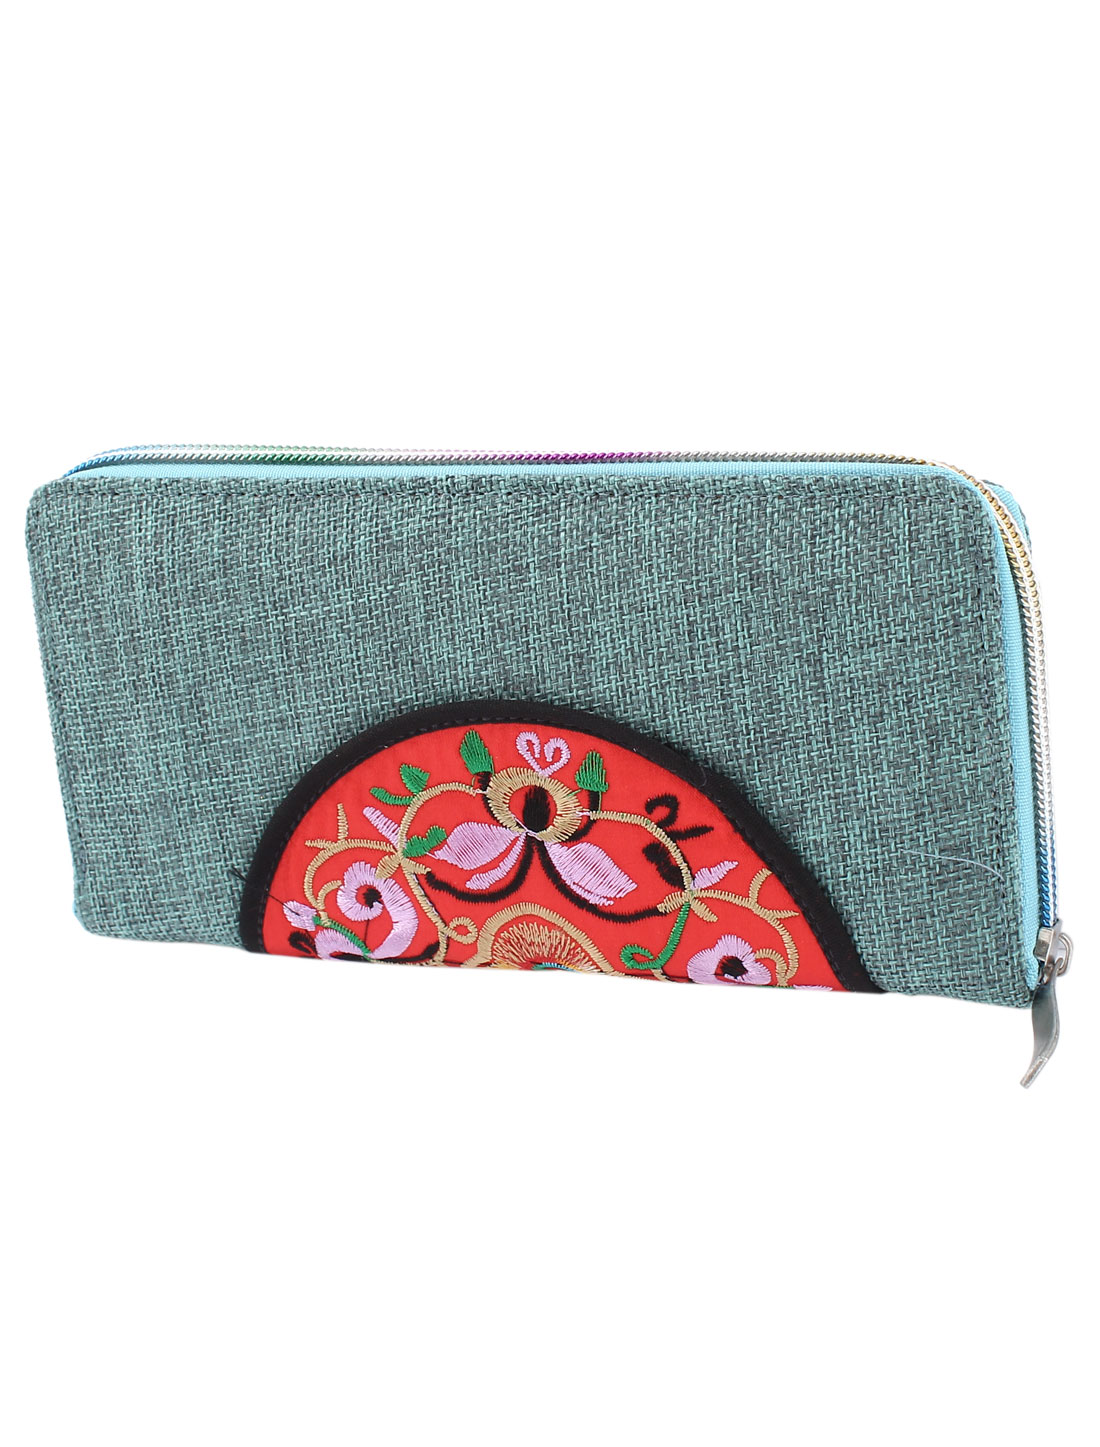 Cyan Gray Linen Rectangle Design Floral Pattern Zipper Closure Wallet Purse for Ladies